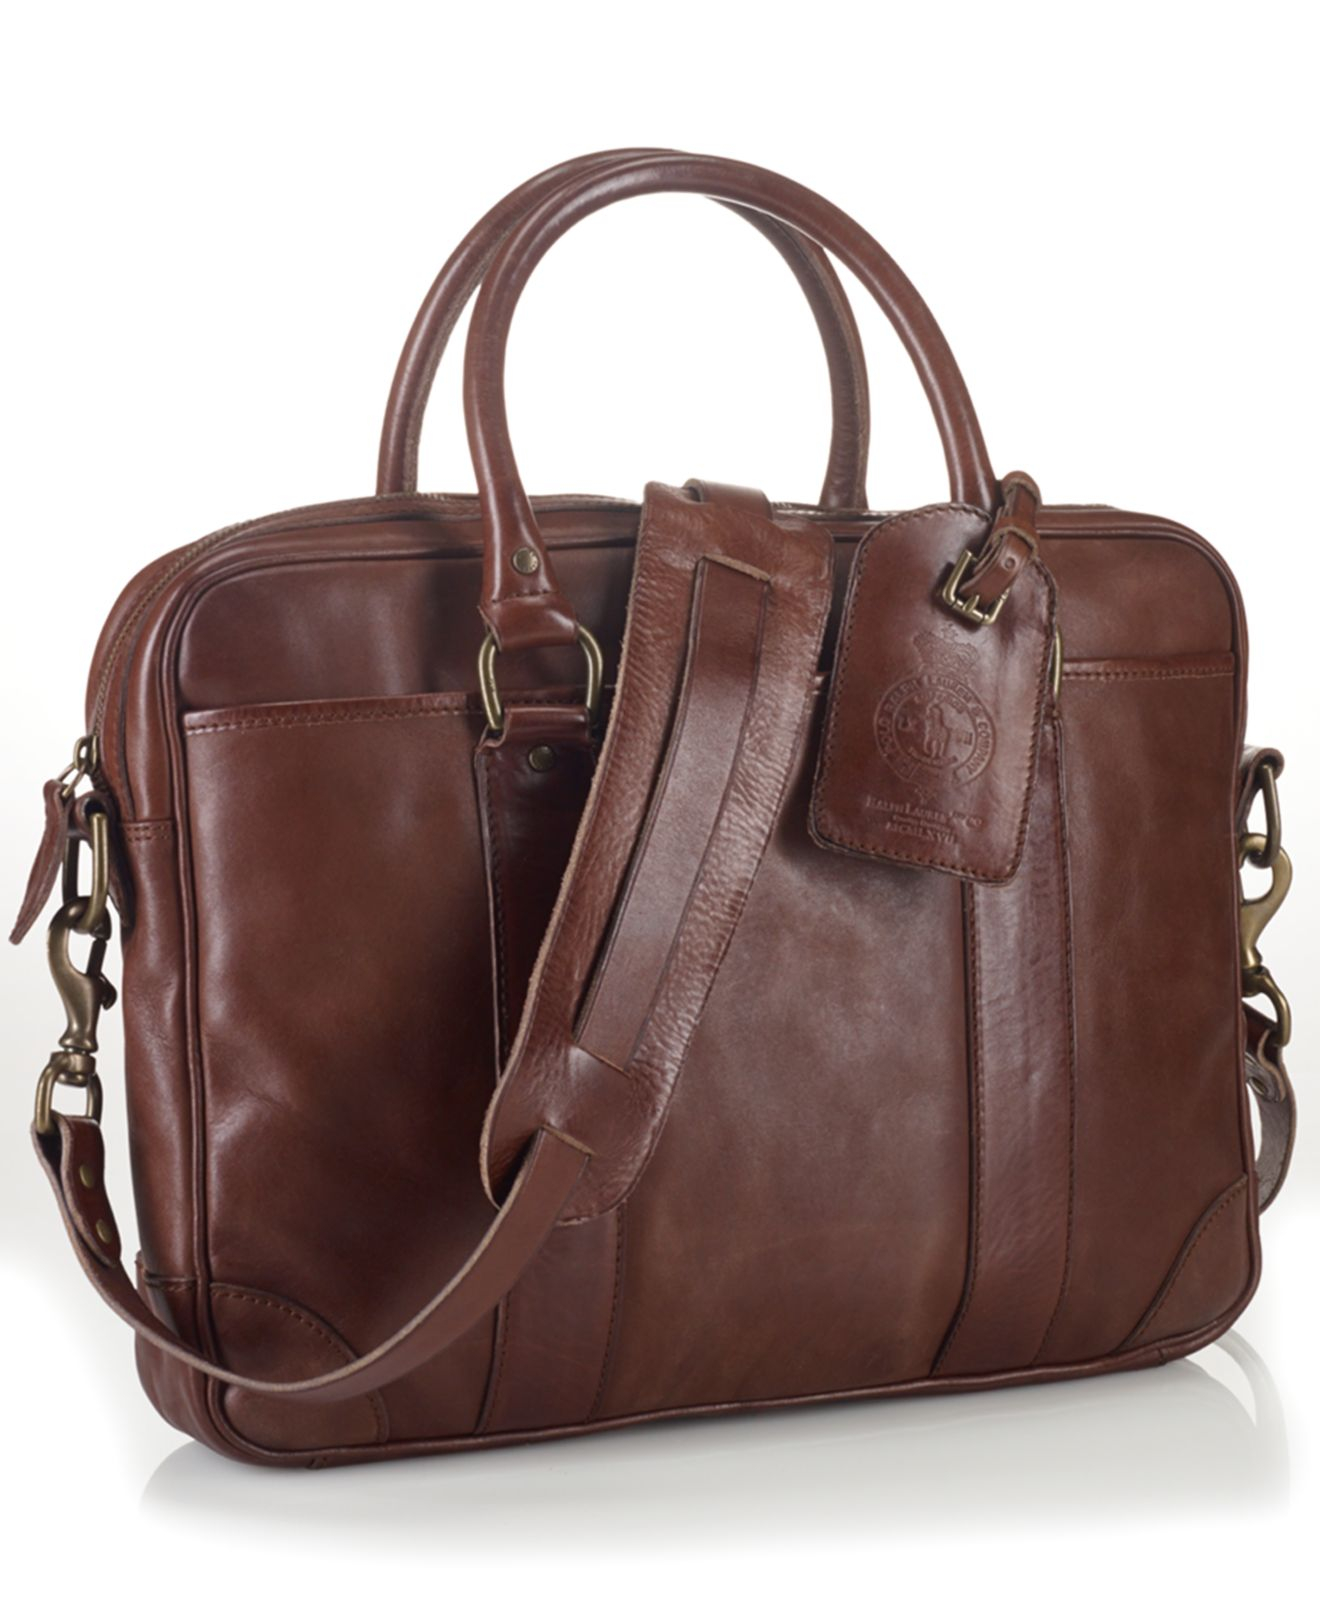 0d6448aacf Lyst - Polo Ralph Lauren Leather Attaché in Brown for Men